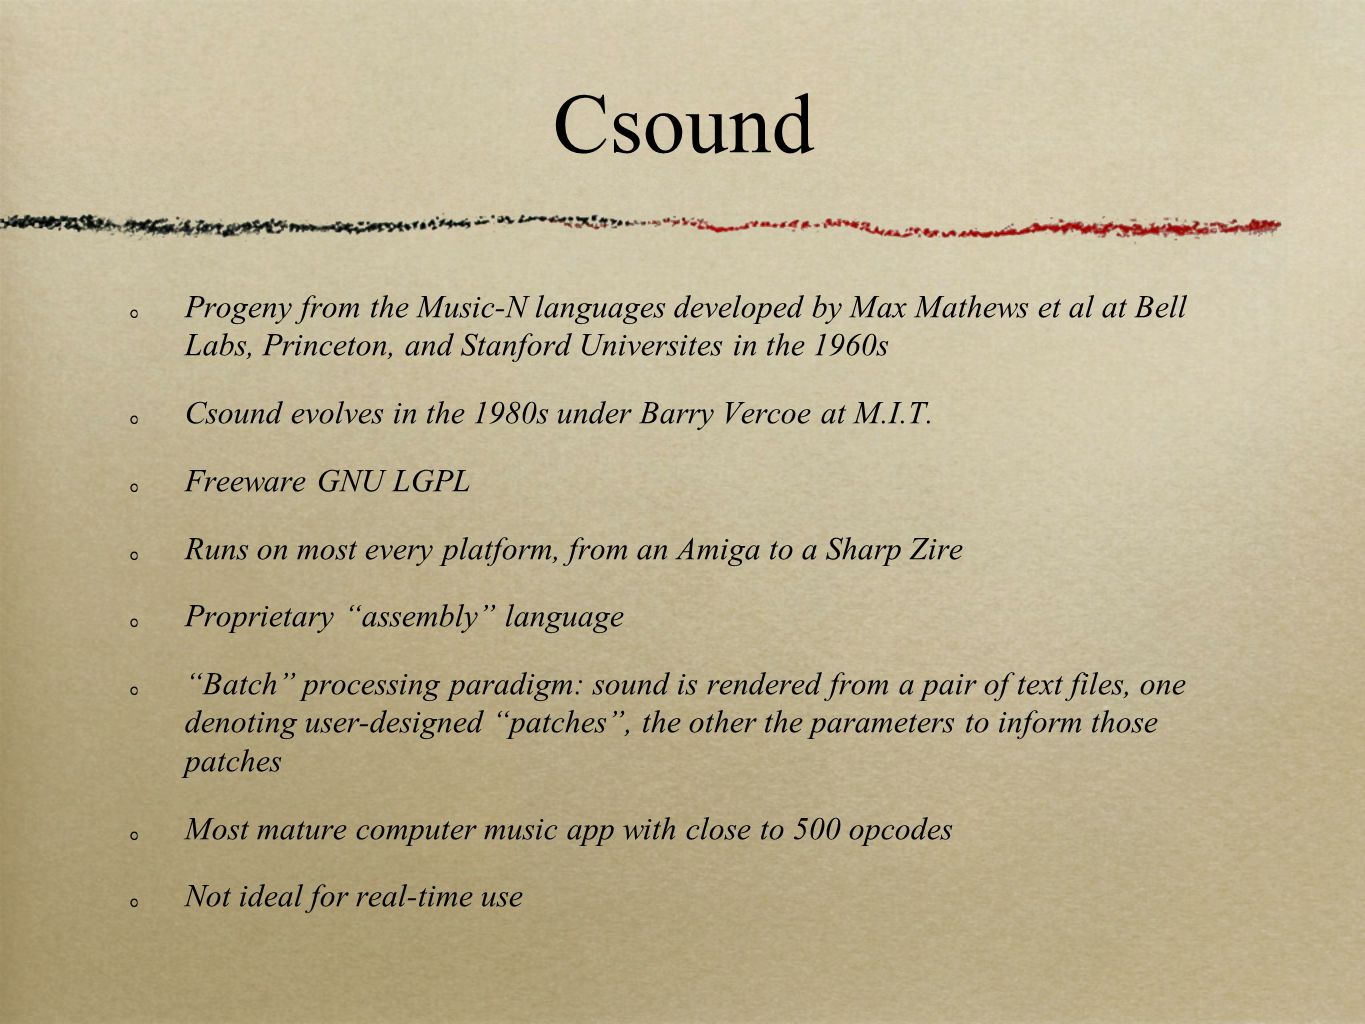 Progeny from the Music-N languages developed by Max Mathews et al at Bell Labs, Princeton, and Stanford Universites in the 1960s Csound evolves in the 1980s under Barry Vercoe at M.I.T.